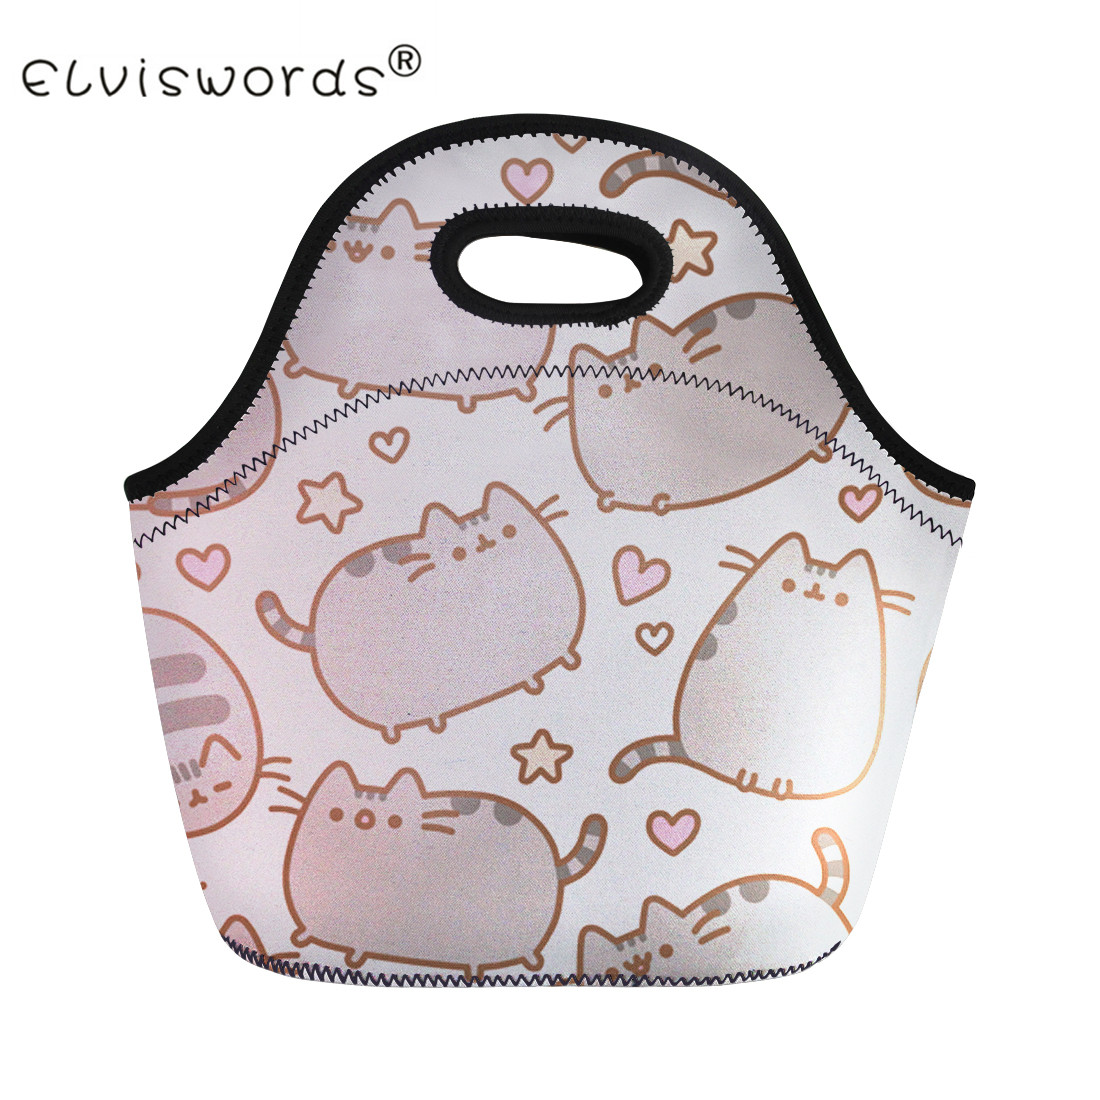 ELVISWORDS Cute Pusheen Cat Print Women Lunch Bags for Kids School Thermal Insulate Food Carry Lunchbags Cartoon Picnic Totes